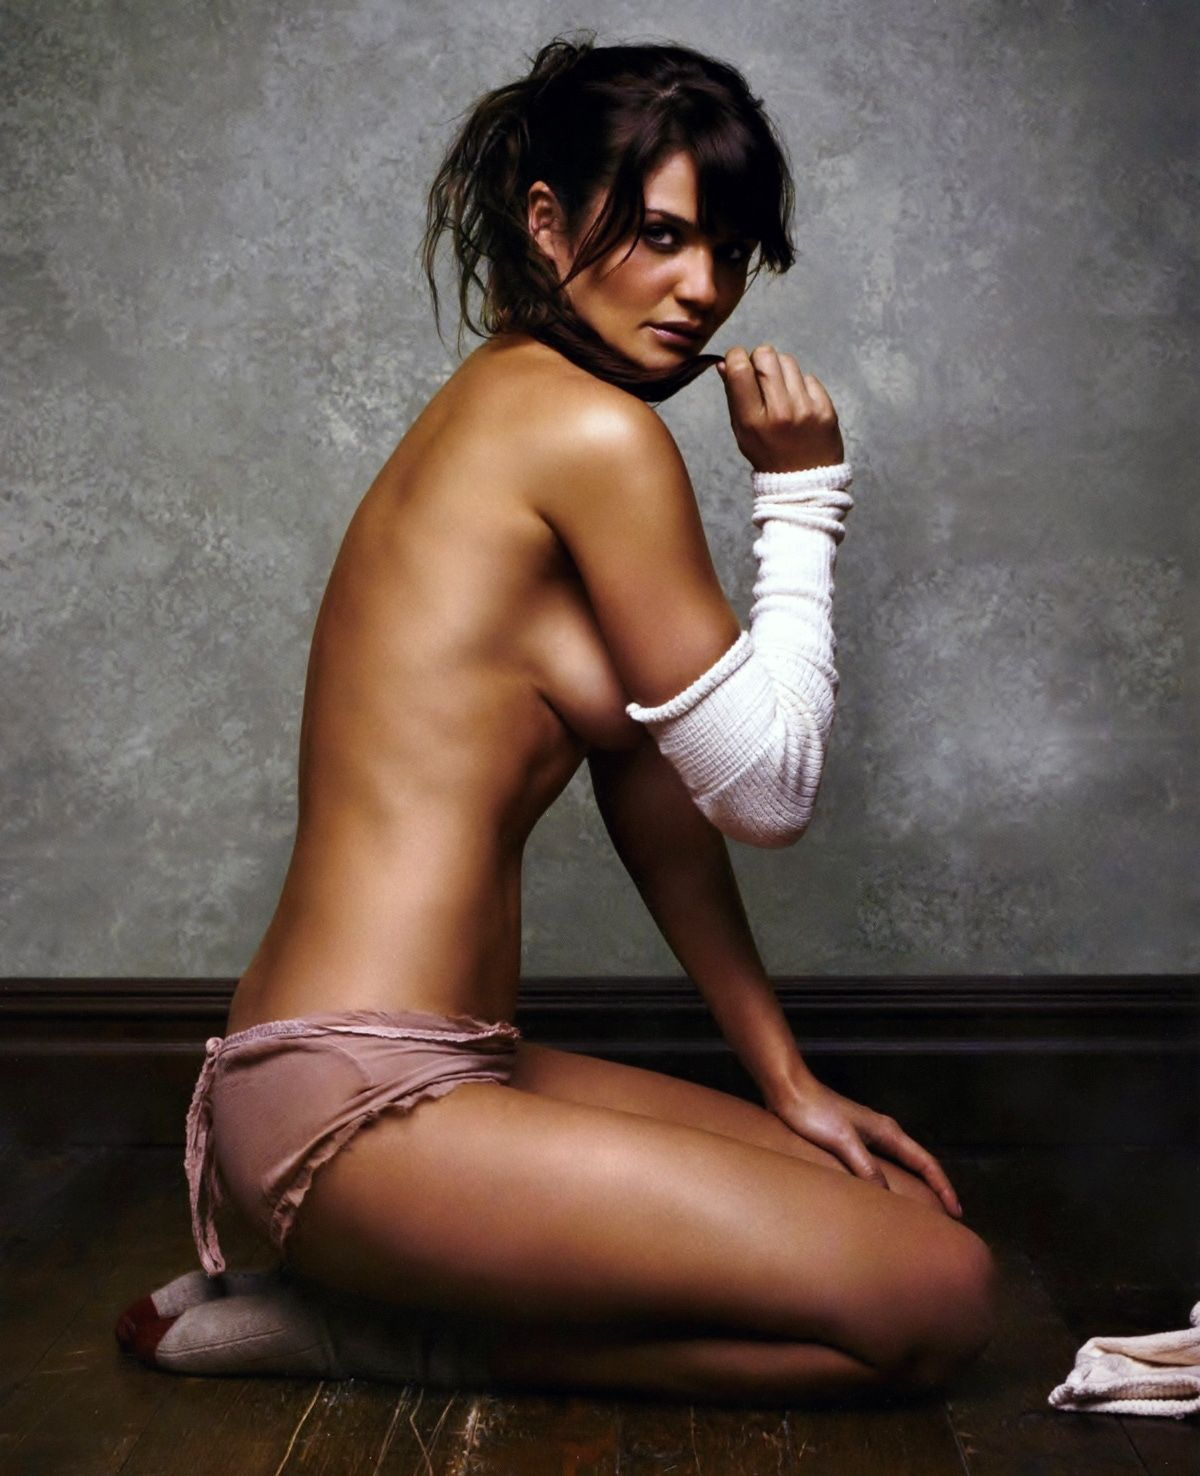 Helena christensen gq uk oct 2007 by michael williams hq scans naked (75 photo), Leaked Celebrites photos